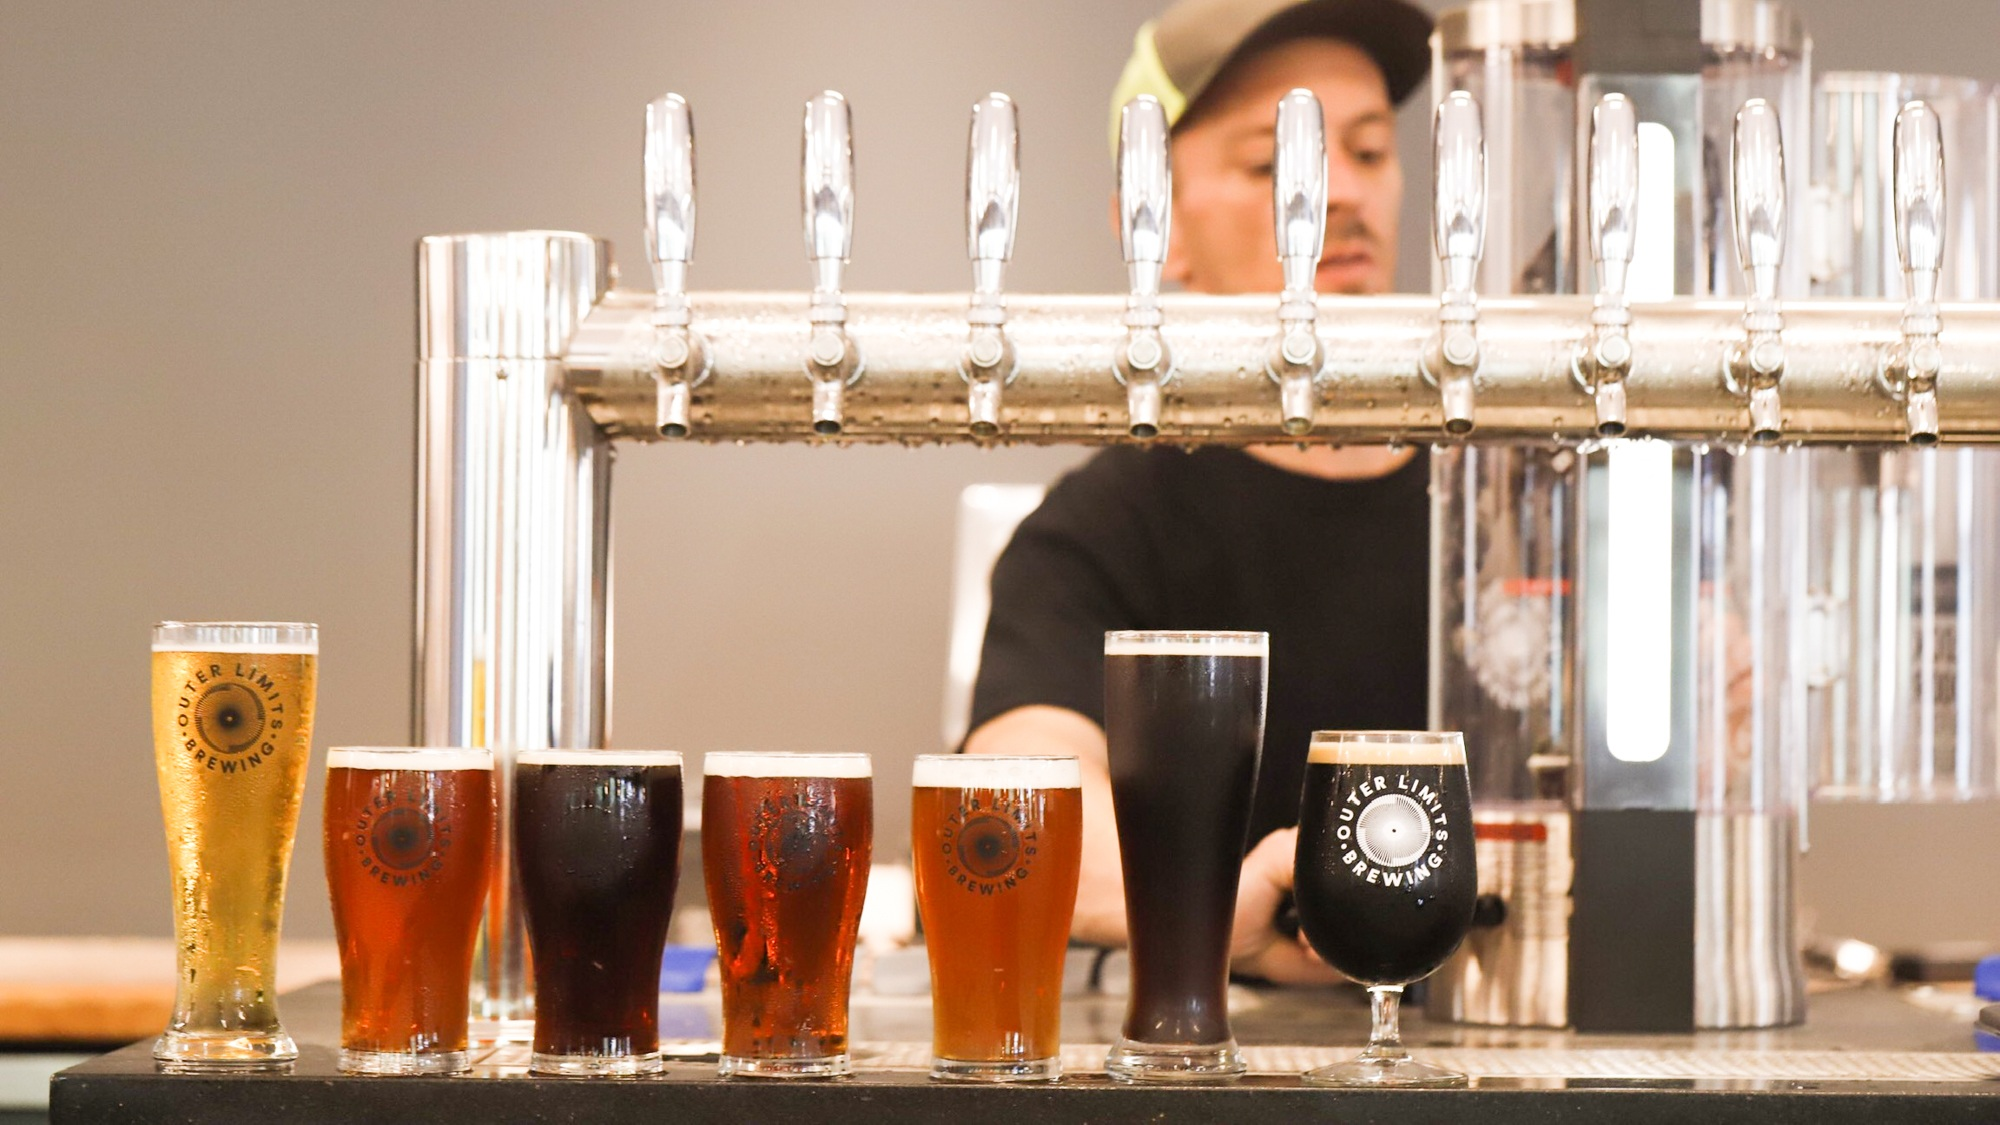 What's on tap - Here's our selection